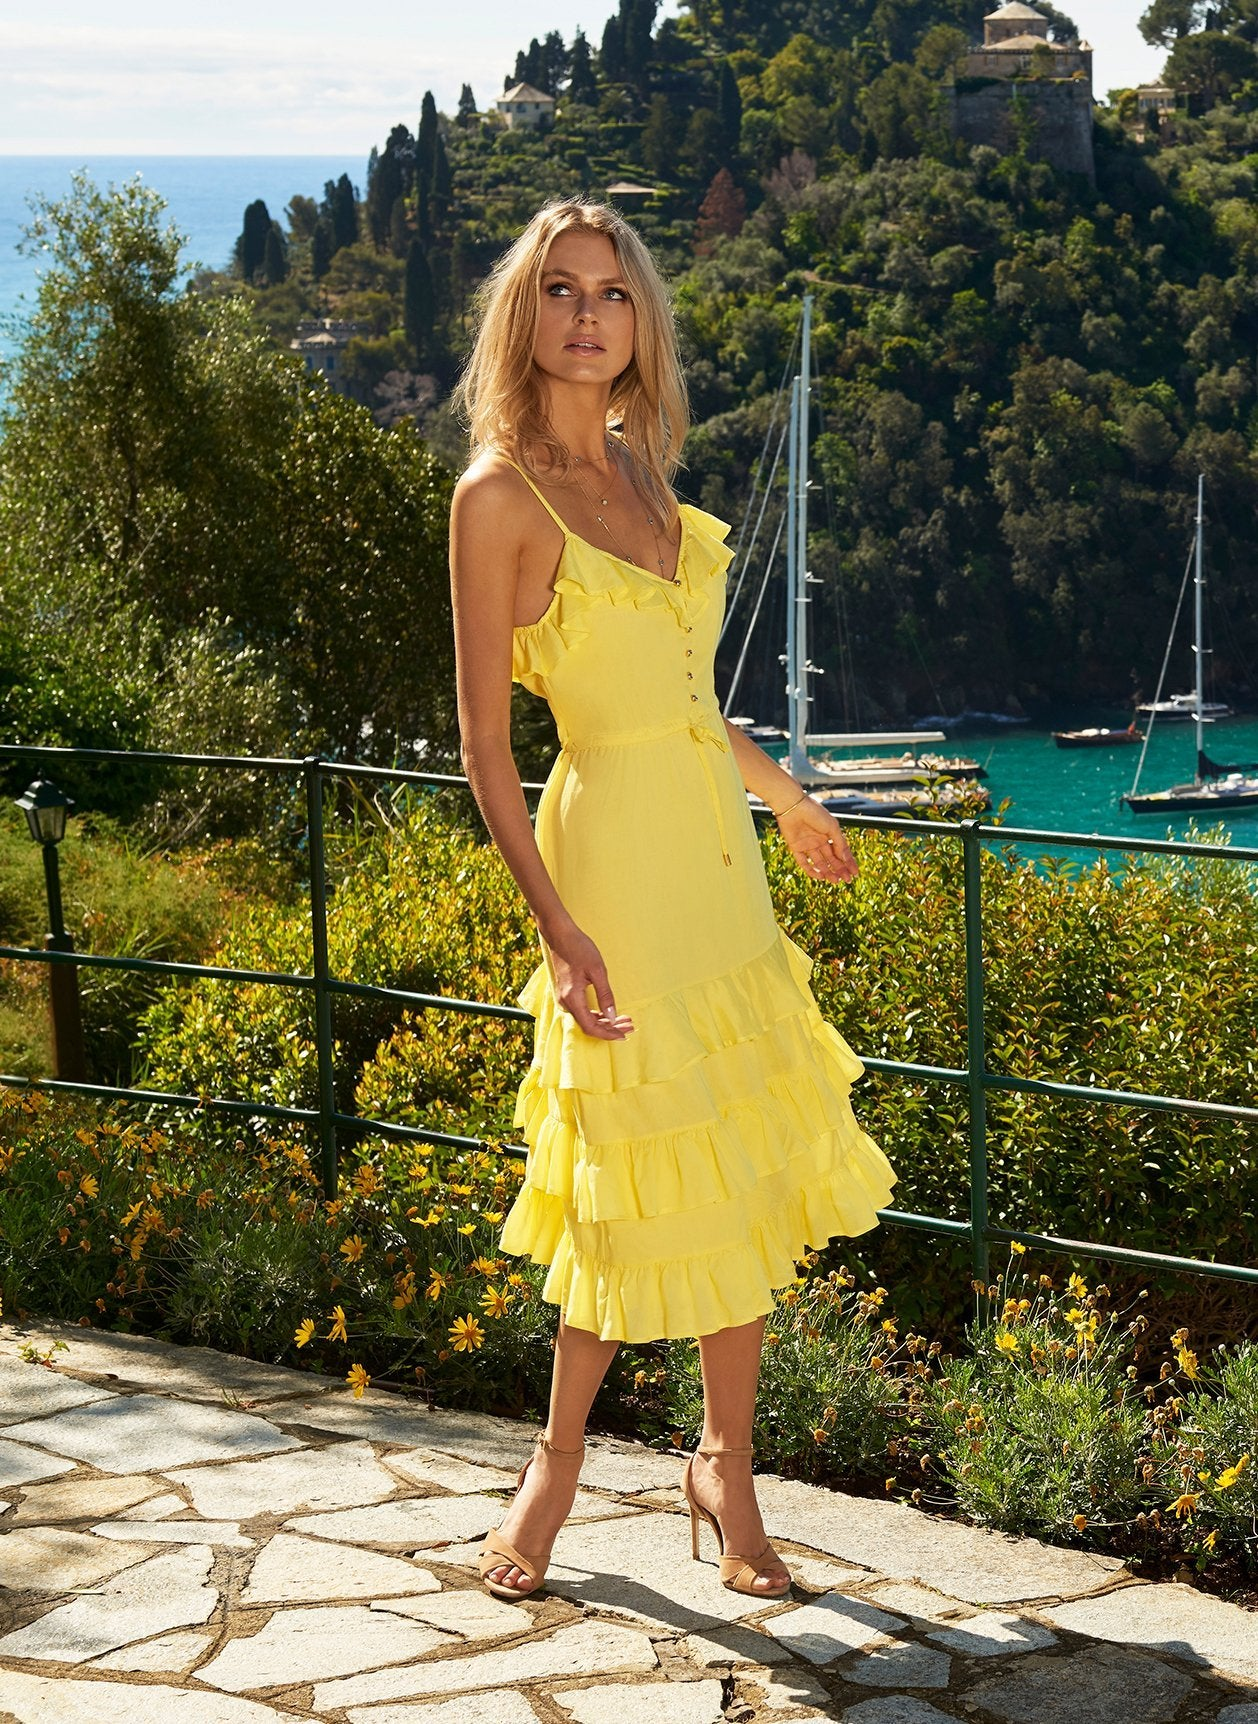 bethan yellow midi dress